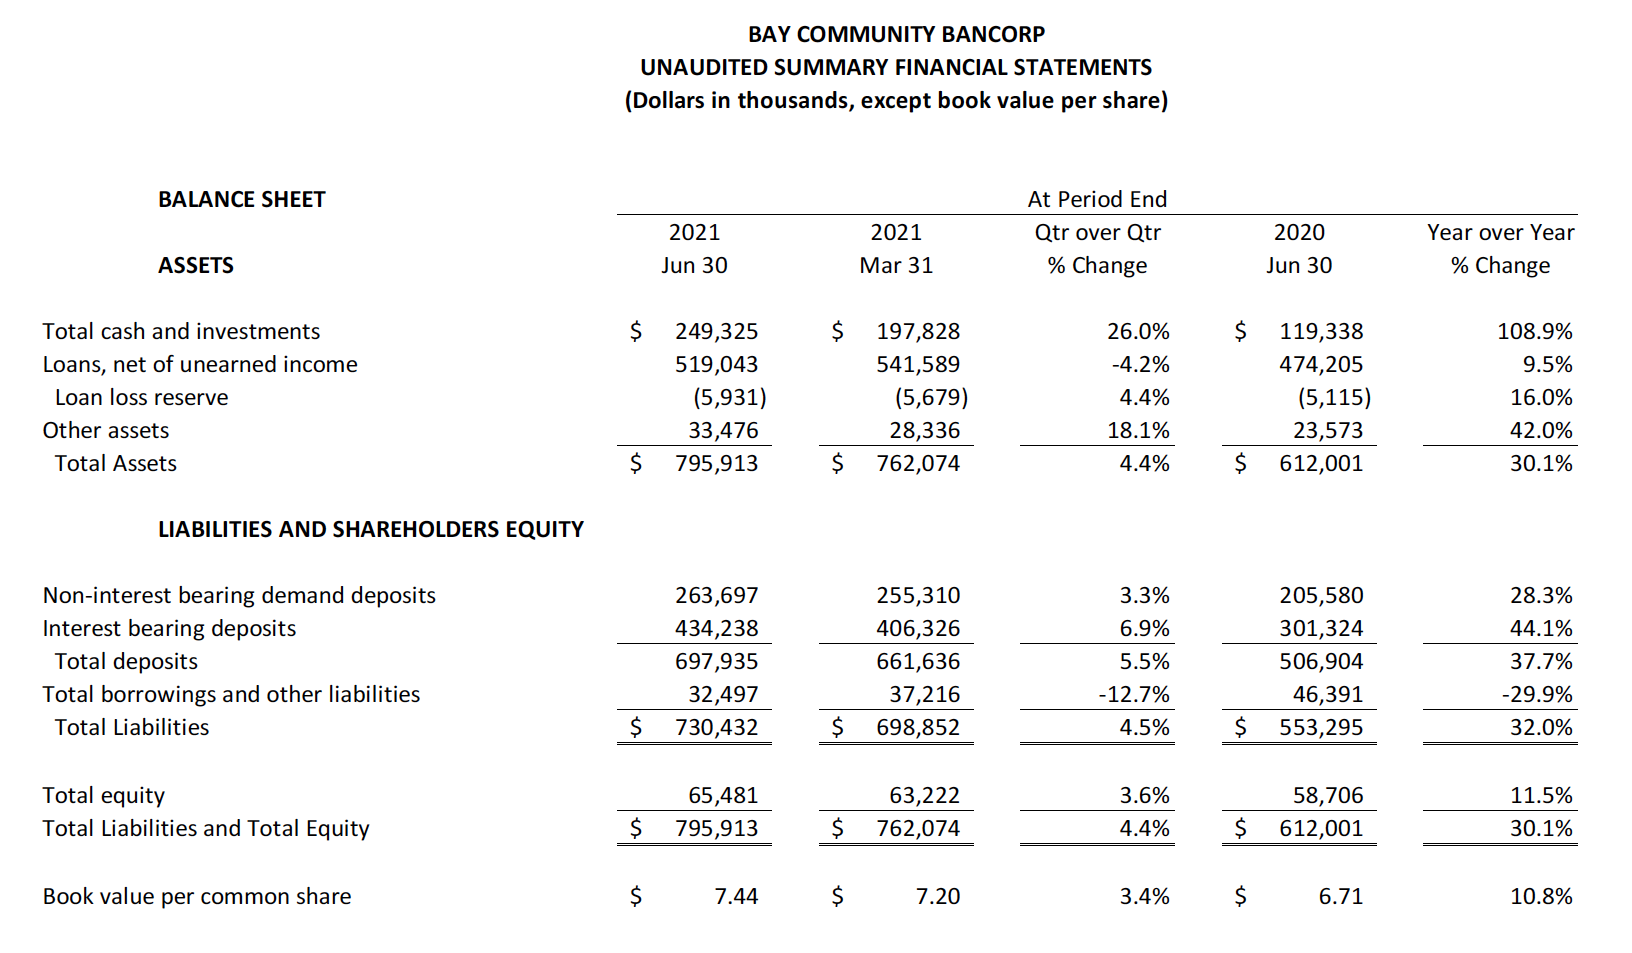 2021 Q2 Unaudited summary financial statements table B